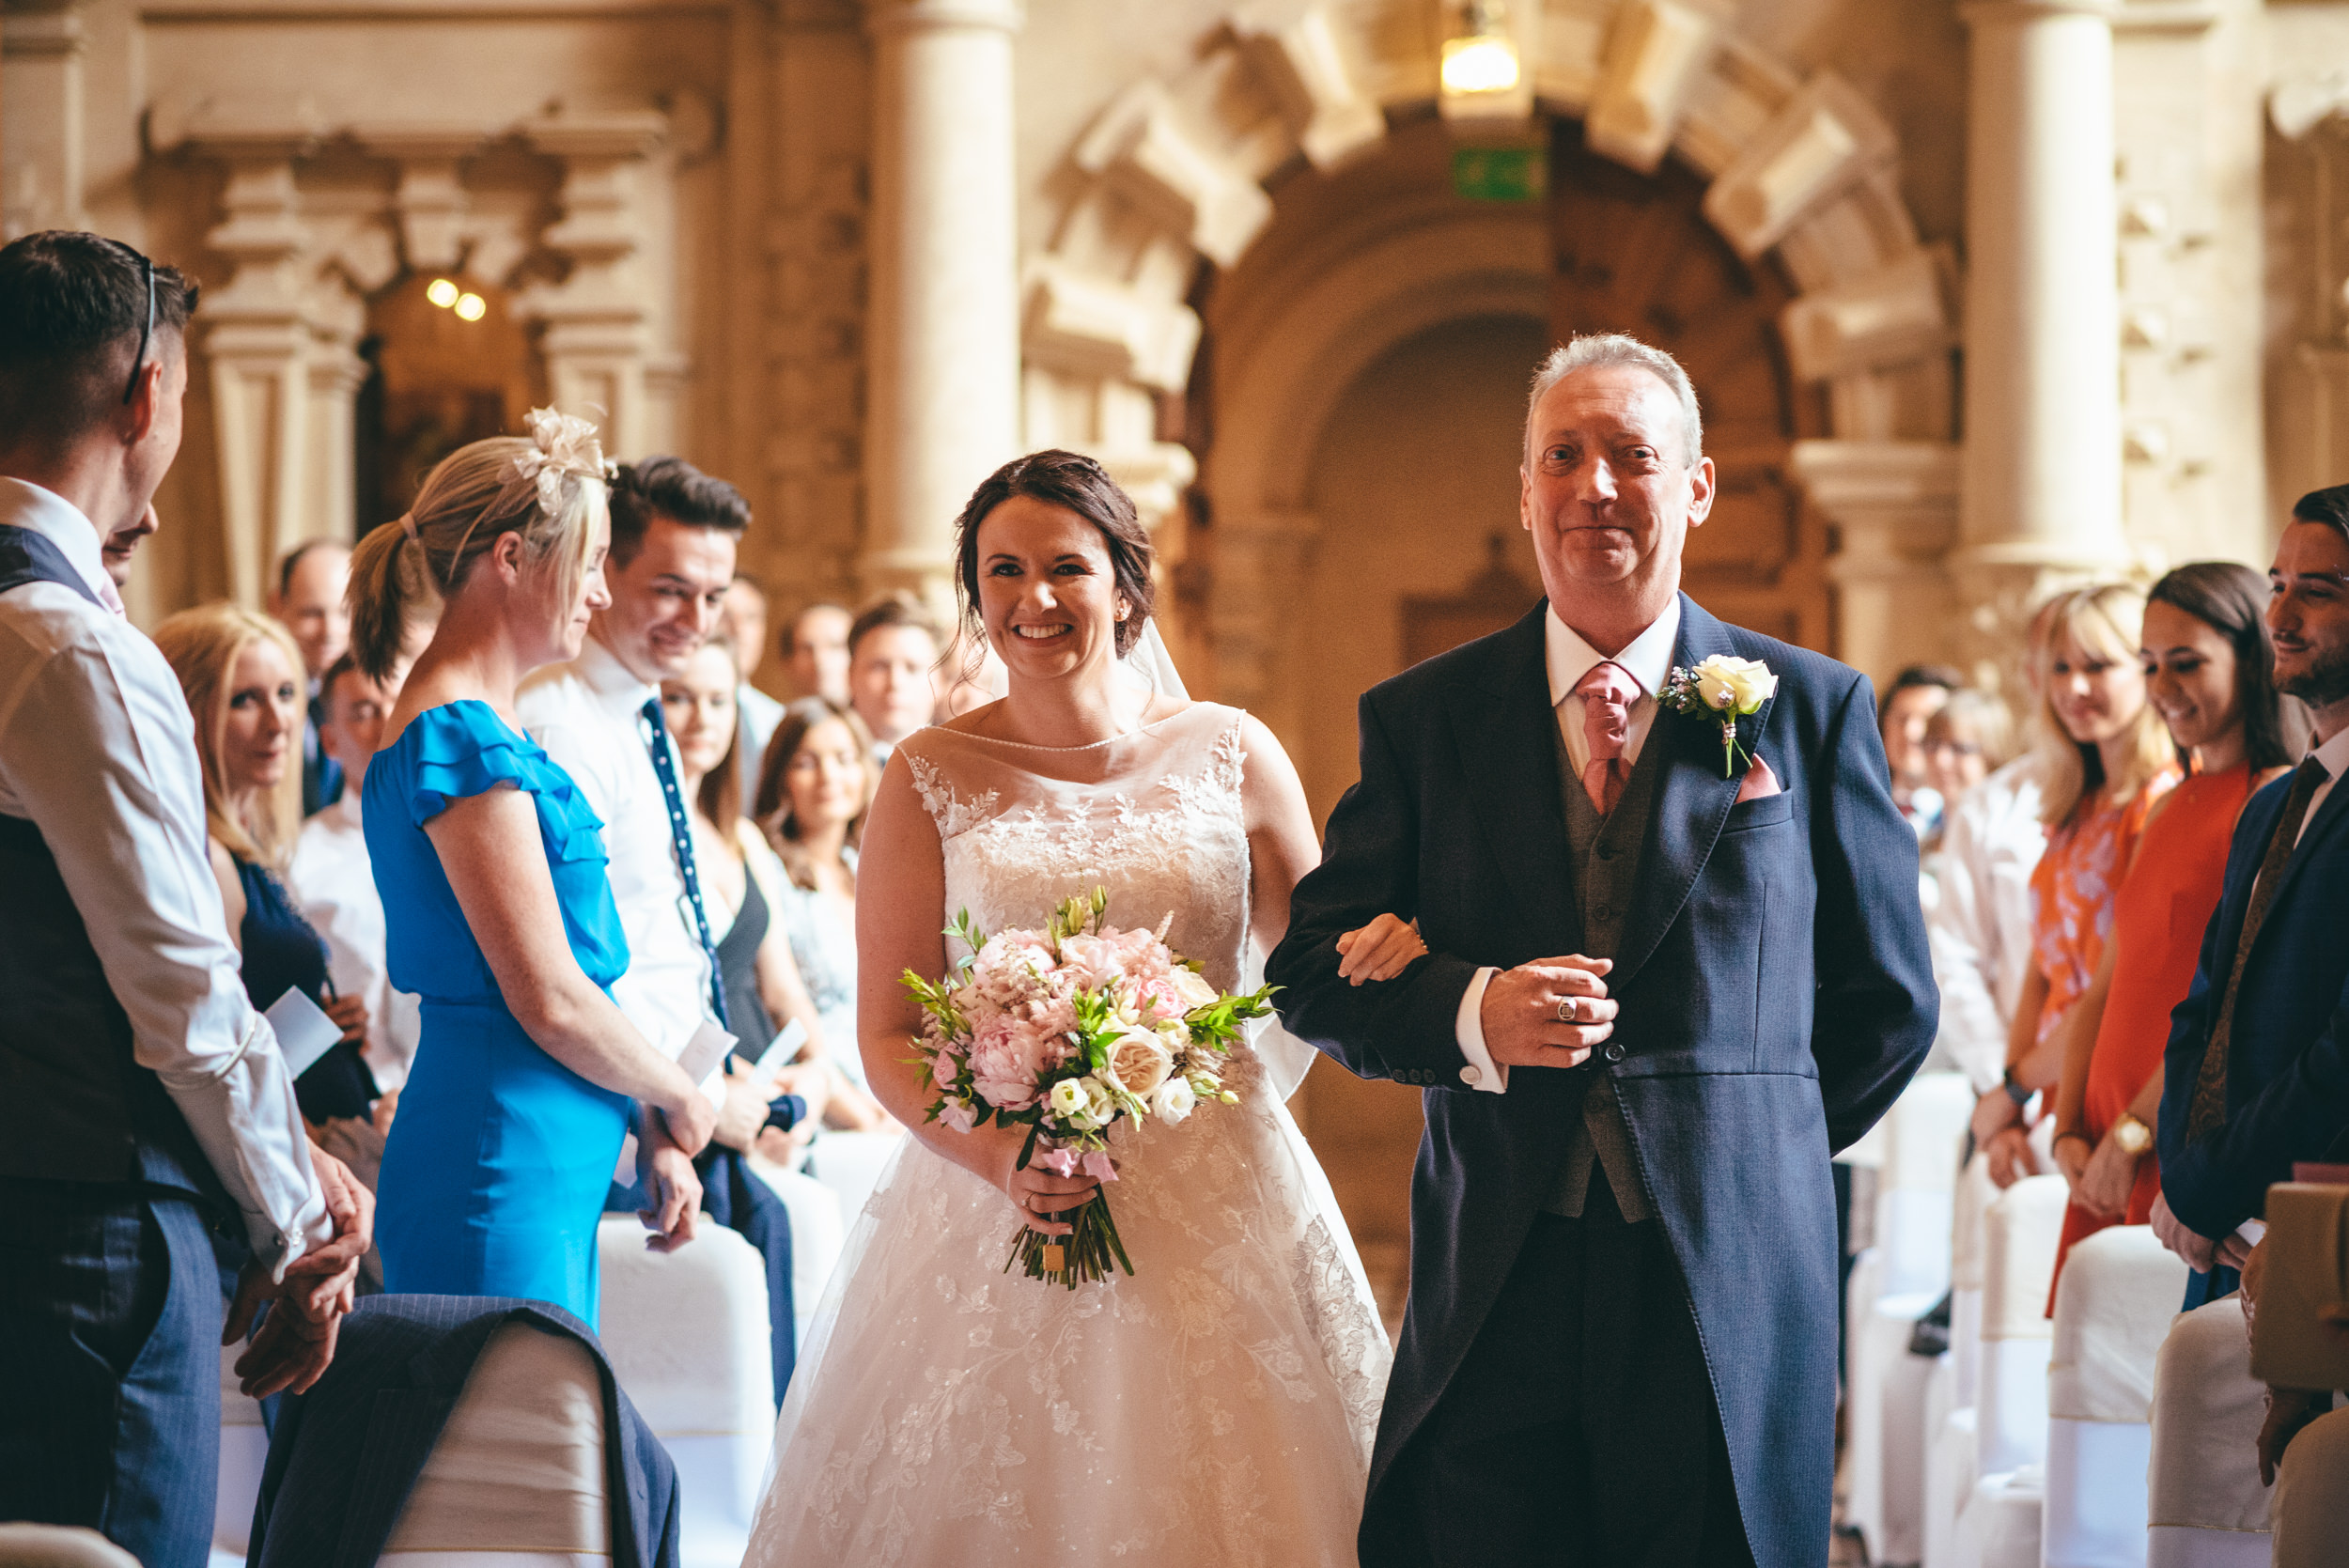 Bride and father walking down the aisle at Harlaxton Manor